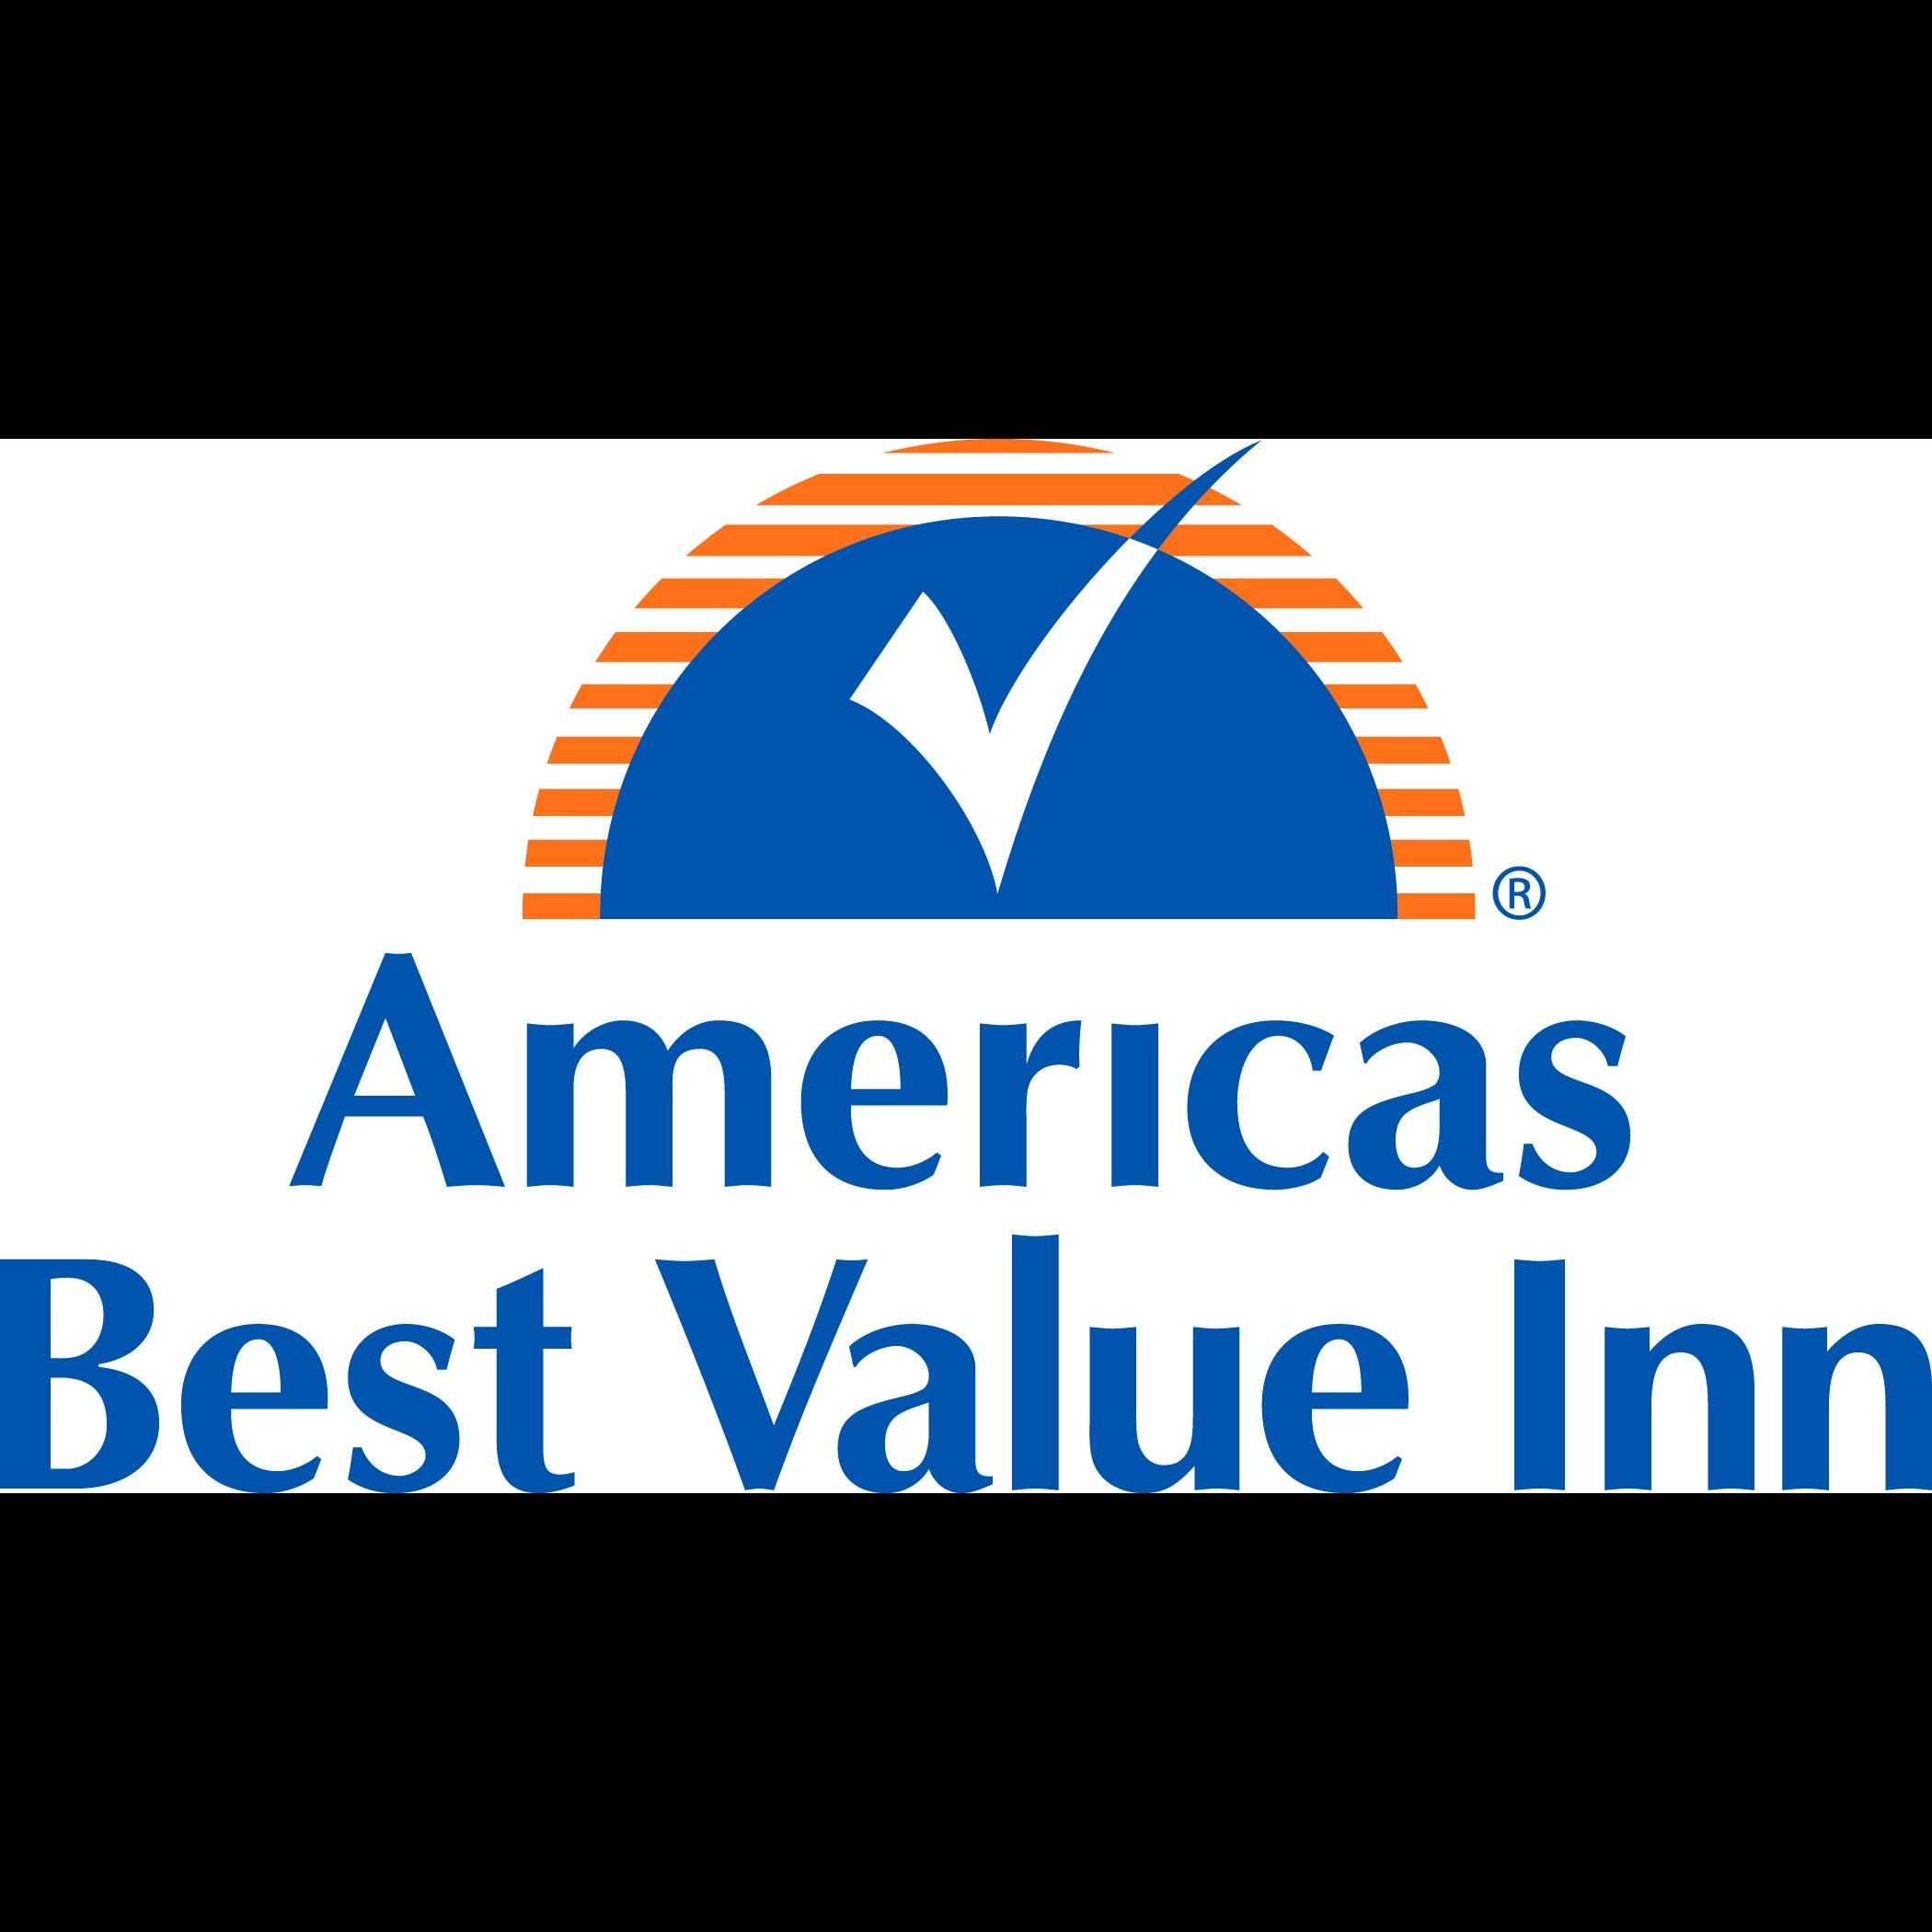 Americas Best Value Inn - Loma Lodge (Sea World / Old Town) - San Diego, CA - Hotels & Motels